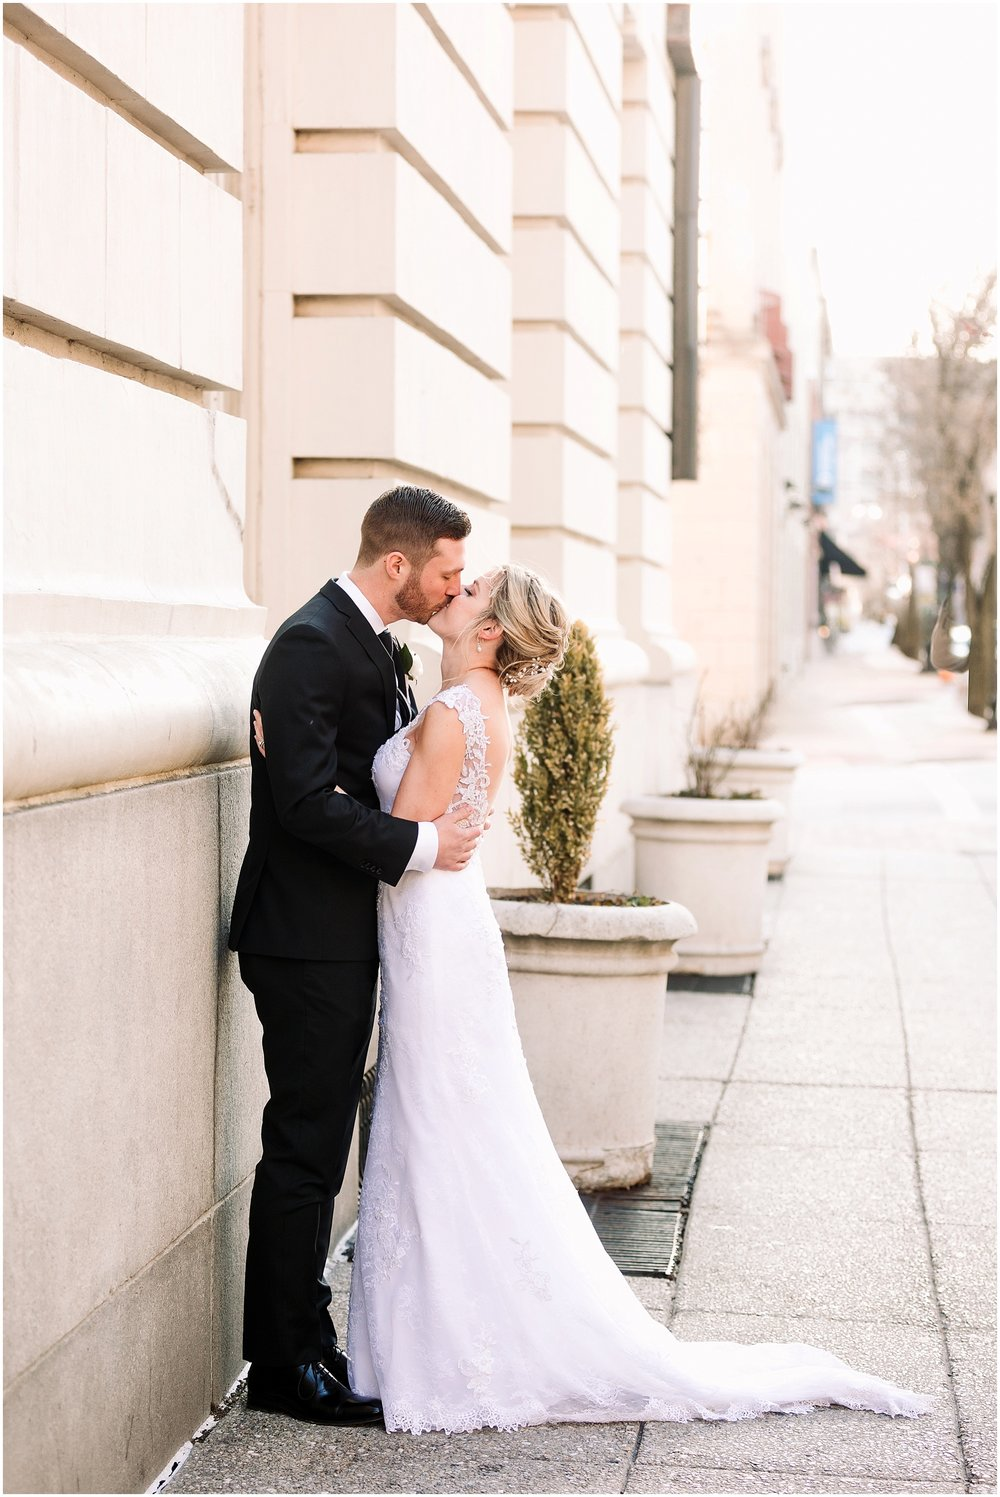 Hannah Leigh Photography Belvedere Wedding Baltimore MD_7267.jpg